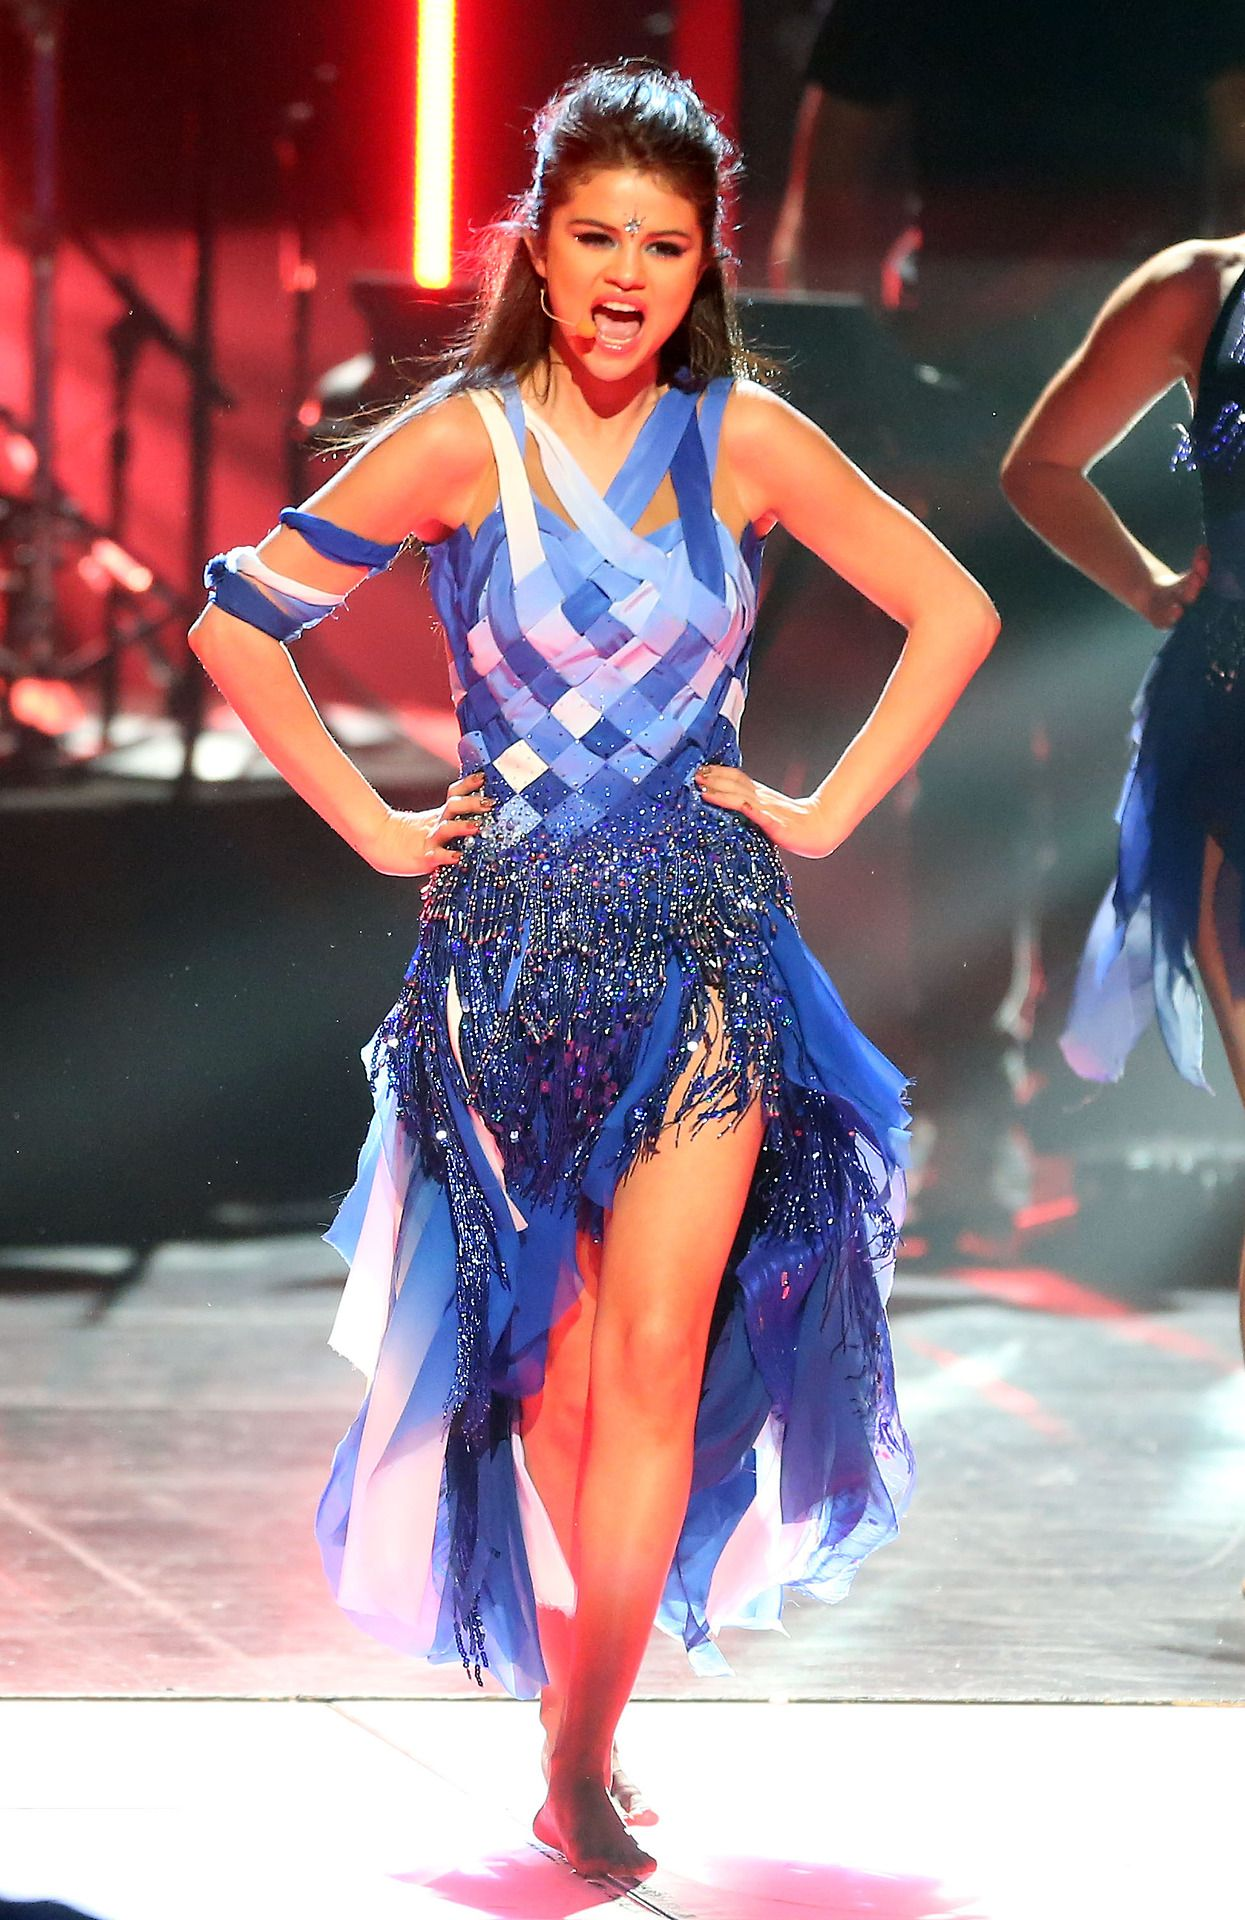 Selena Gomez wears a fun, blue, tribal dress performing ...